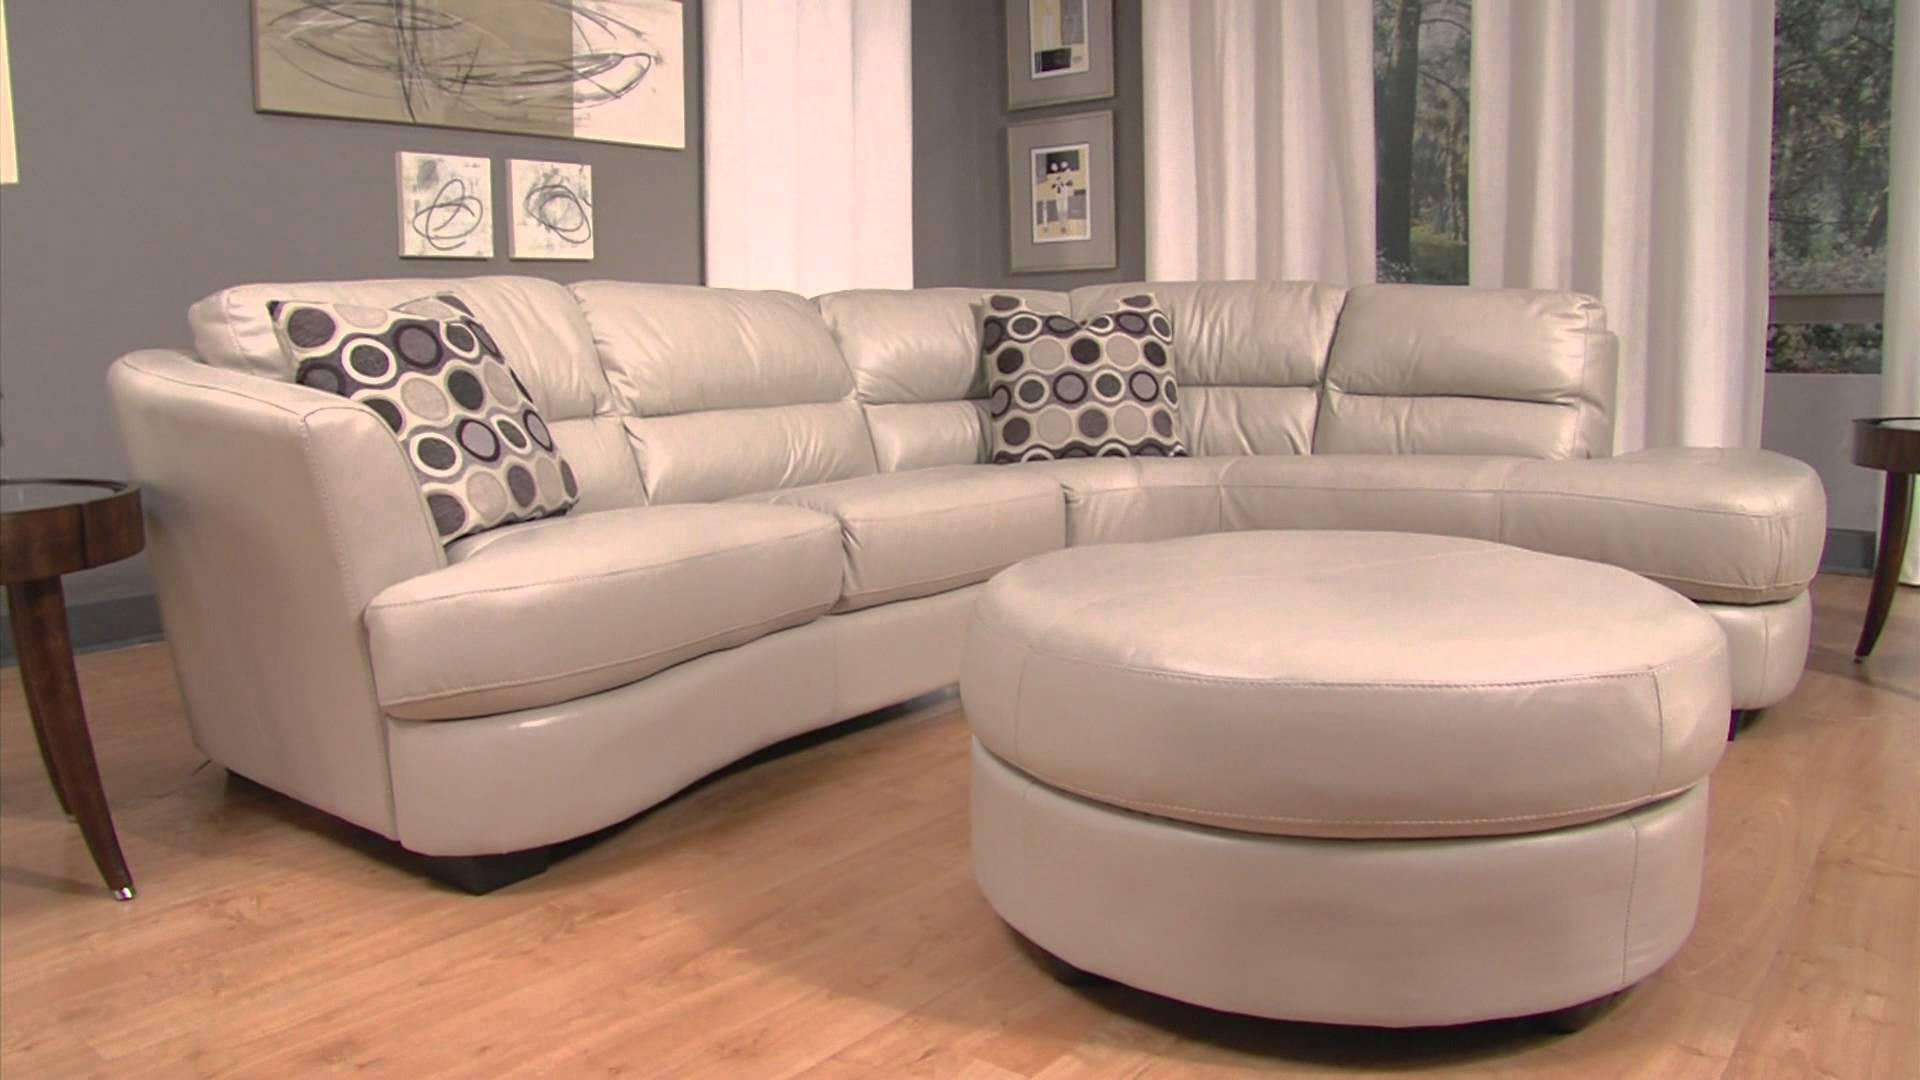 Sofas Center : Costco Recliner Sofa Sectional With Chaise For Berkline Sectional Sofa (View 9 of 15)